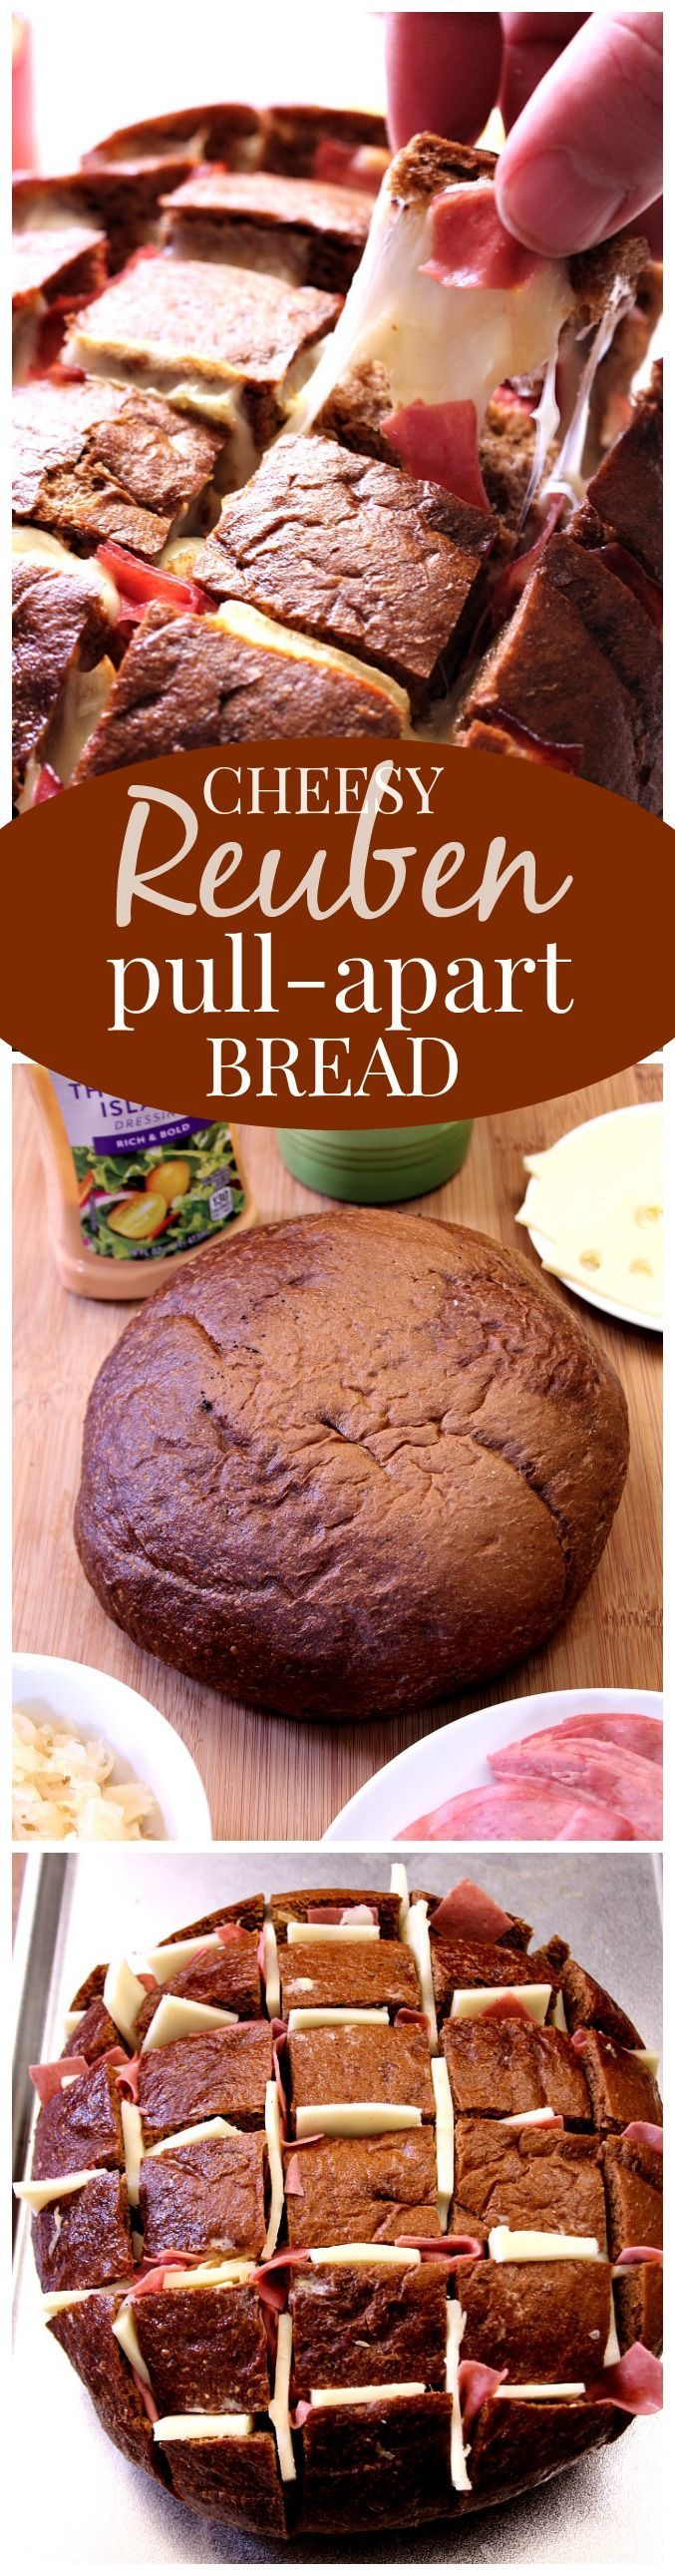 Easy Cheesy Reuben Pull Apart Bread - this one is EPIC! Pumpernickel bread filled with Thousand Island dressing, sauerkraut, corned beef and lots of cheese! Pull apart bread Reuben style!